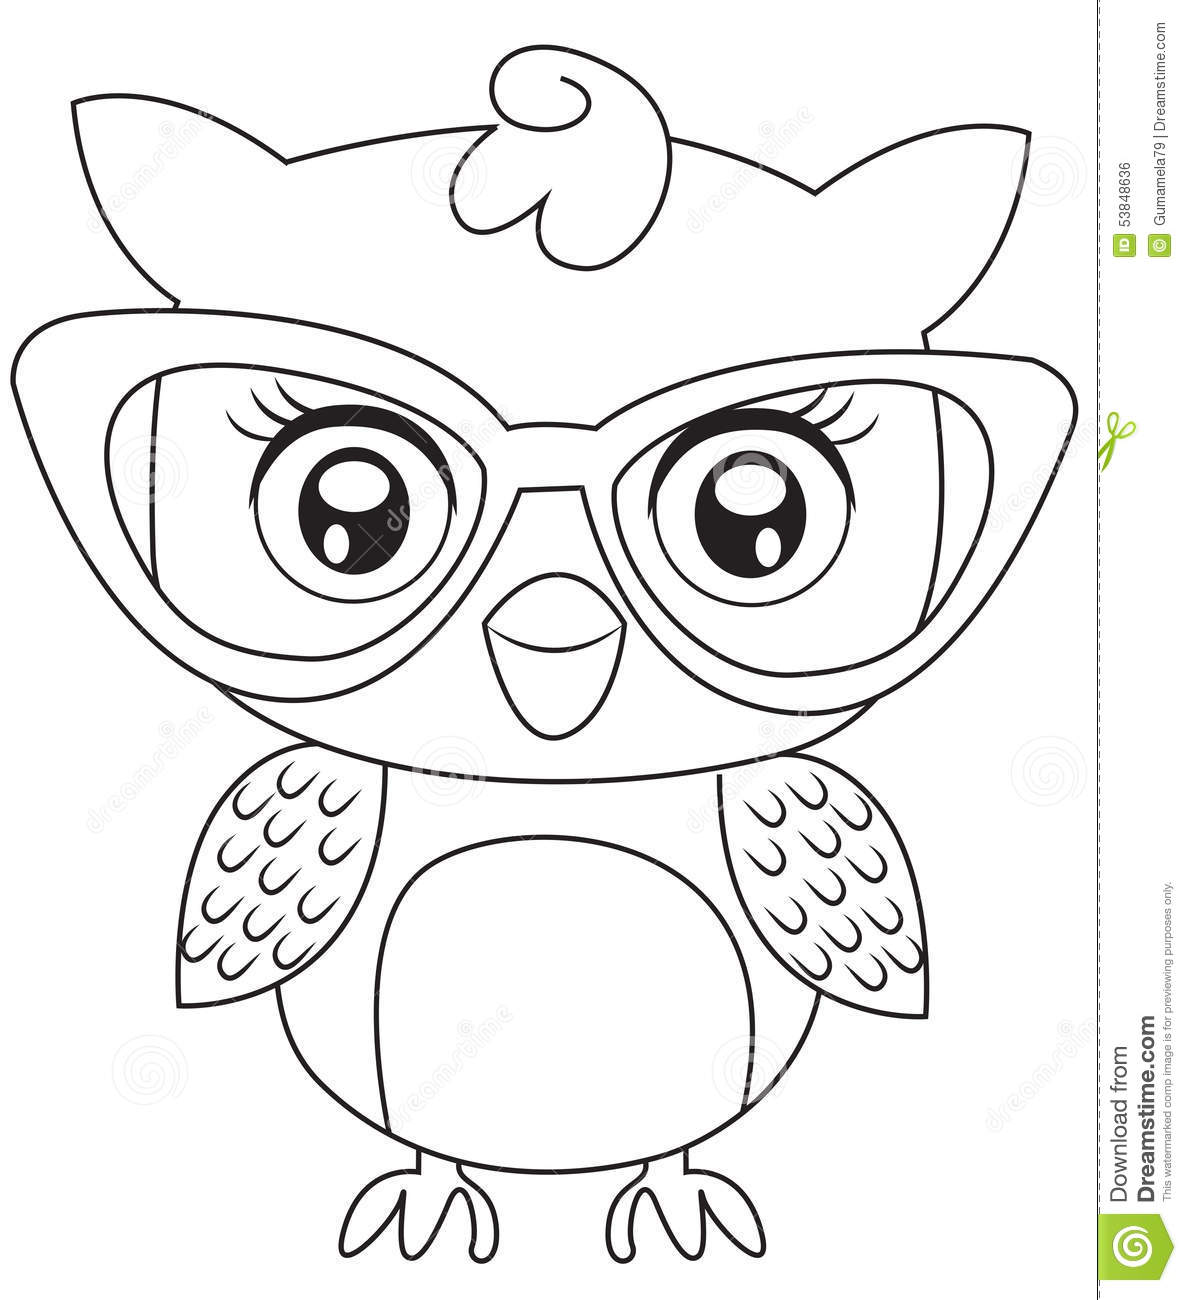 owl with eyeglasses coloring page useful as coloring book for kids